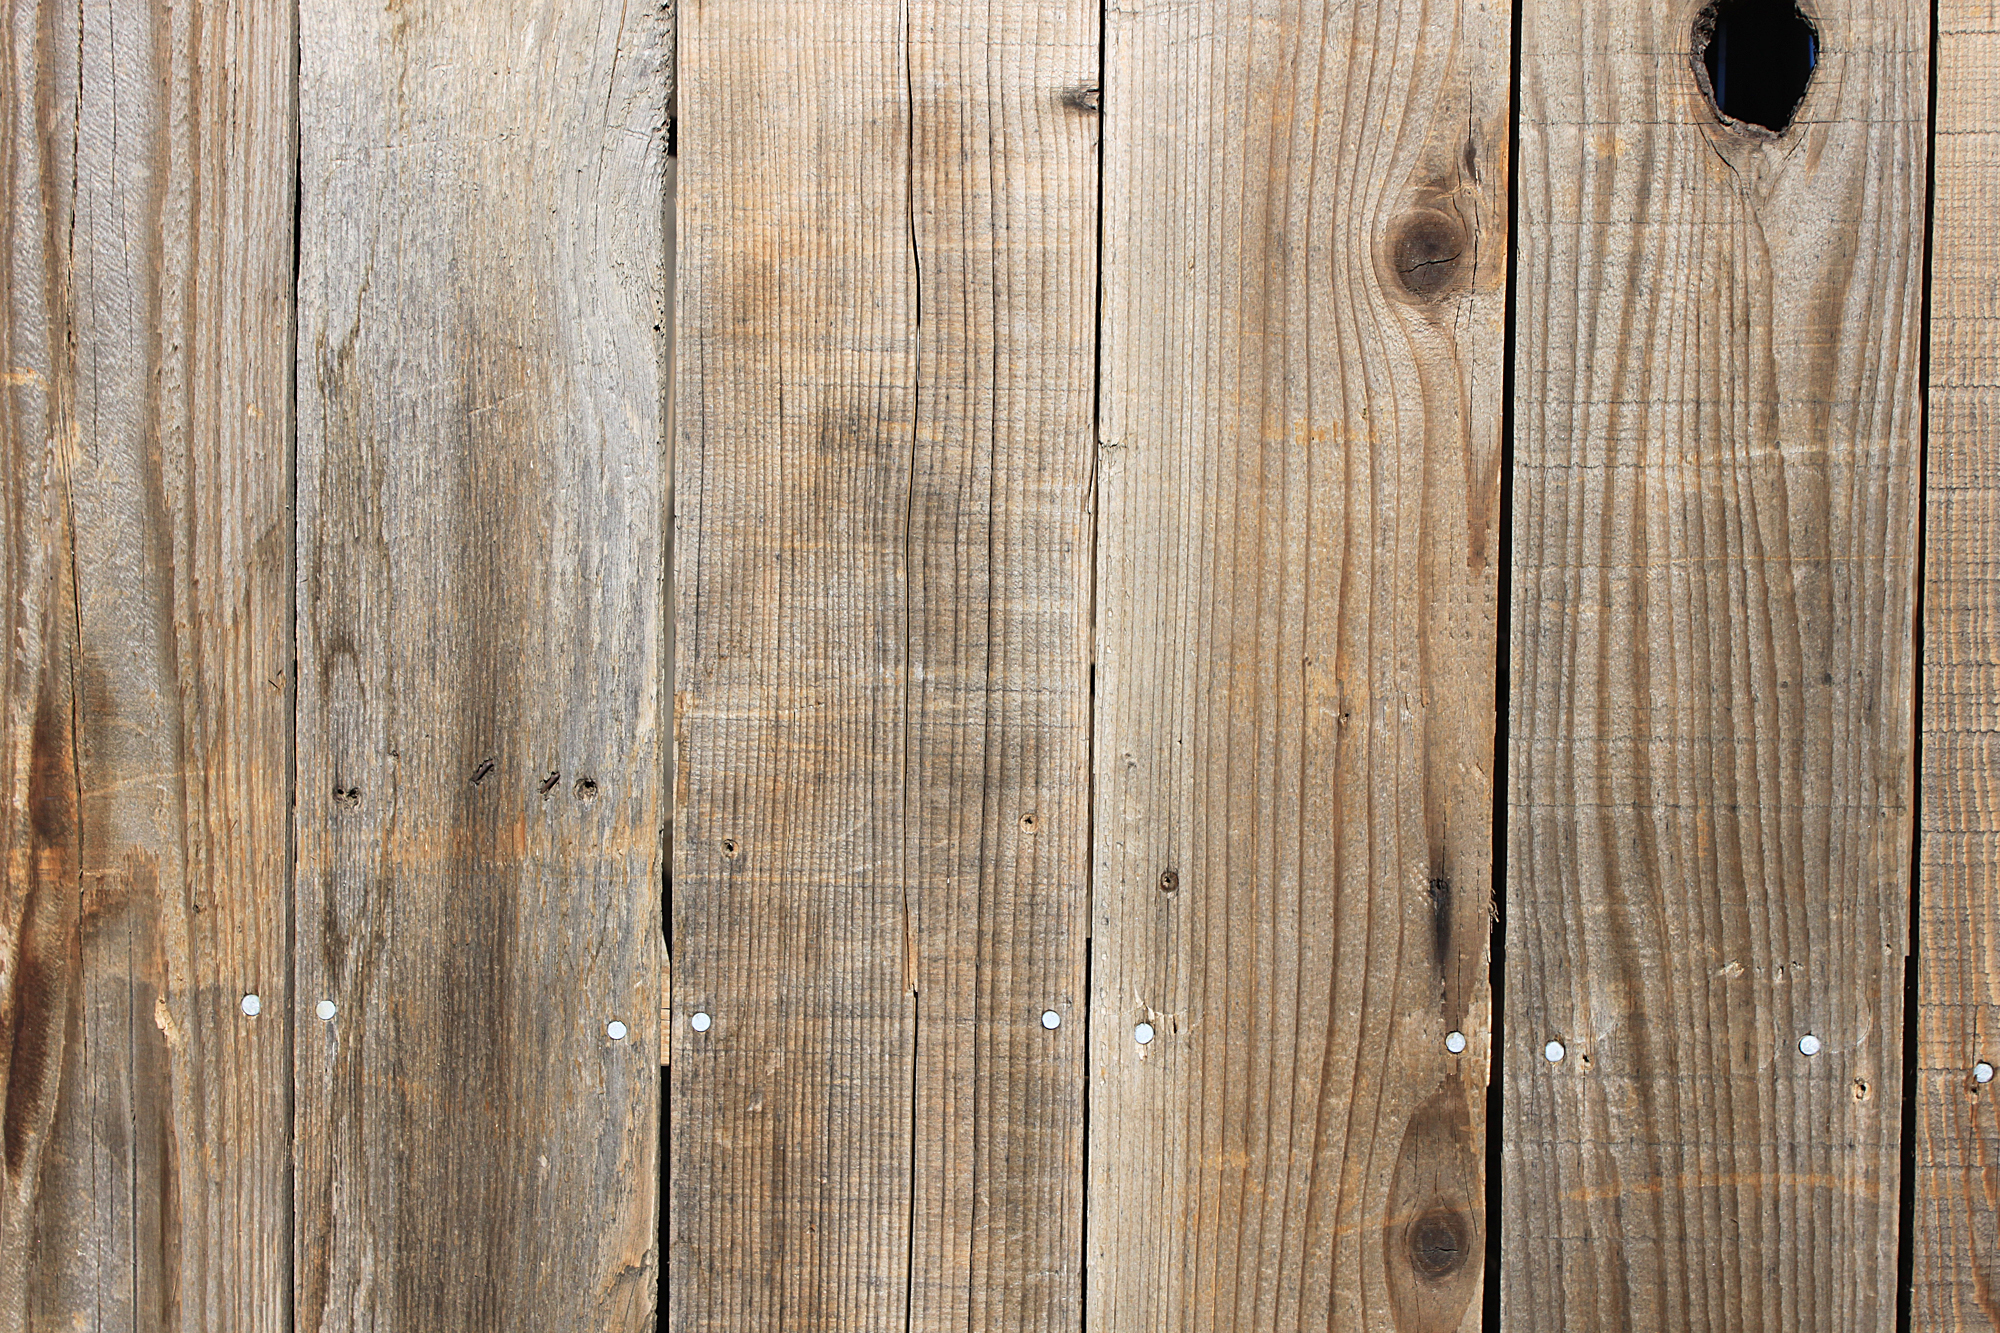 Rustic Wood Background Related Keywords & Suggestions  Rustic Wood